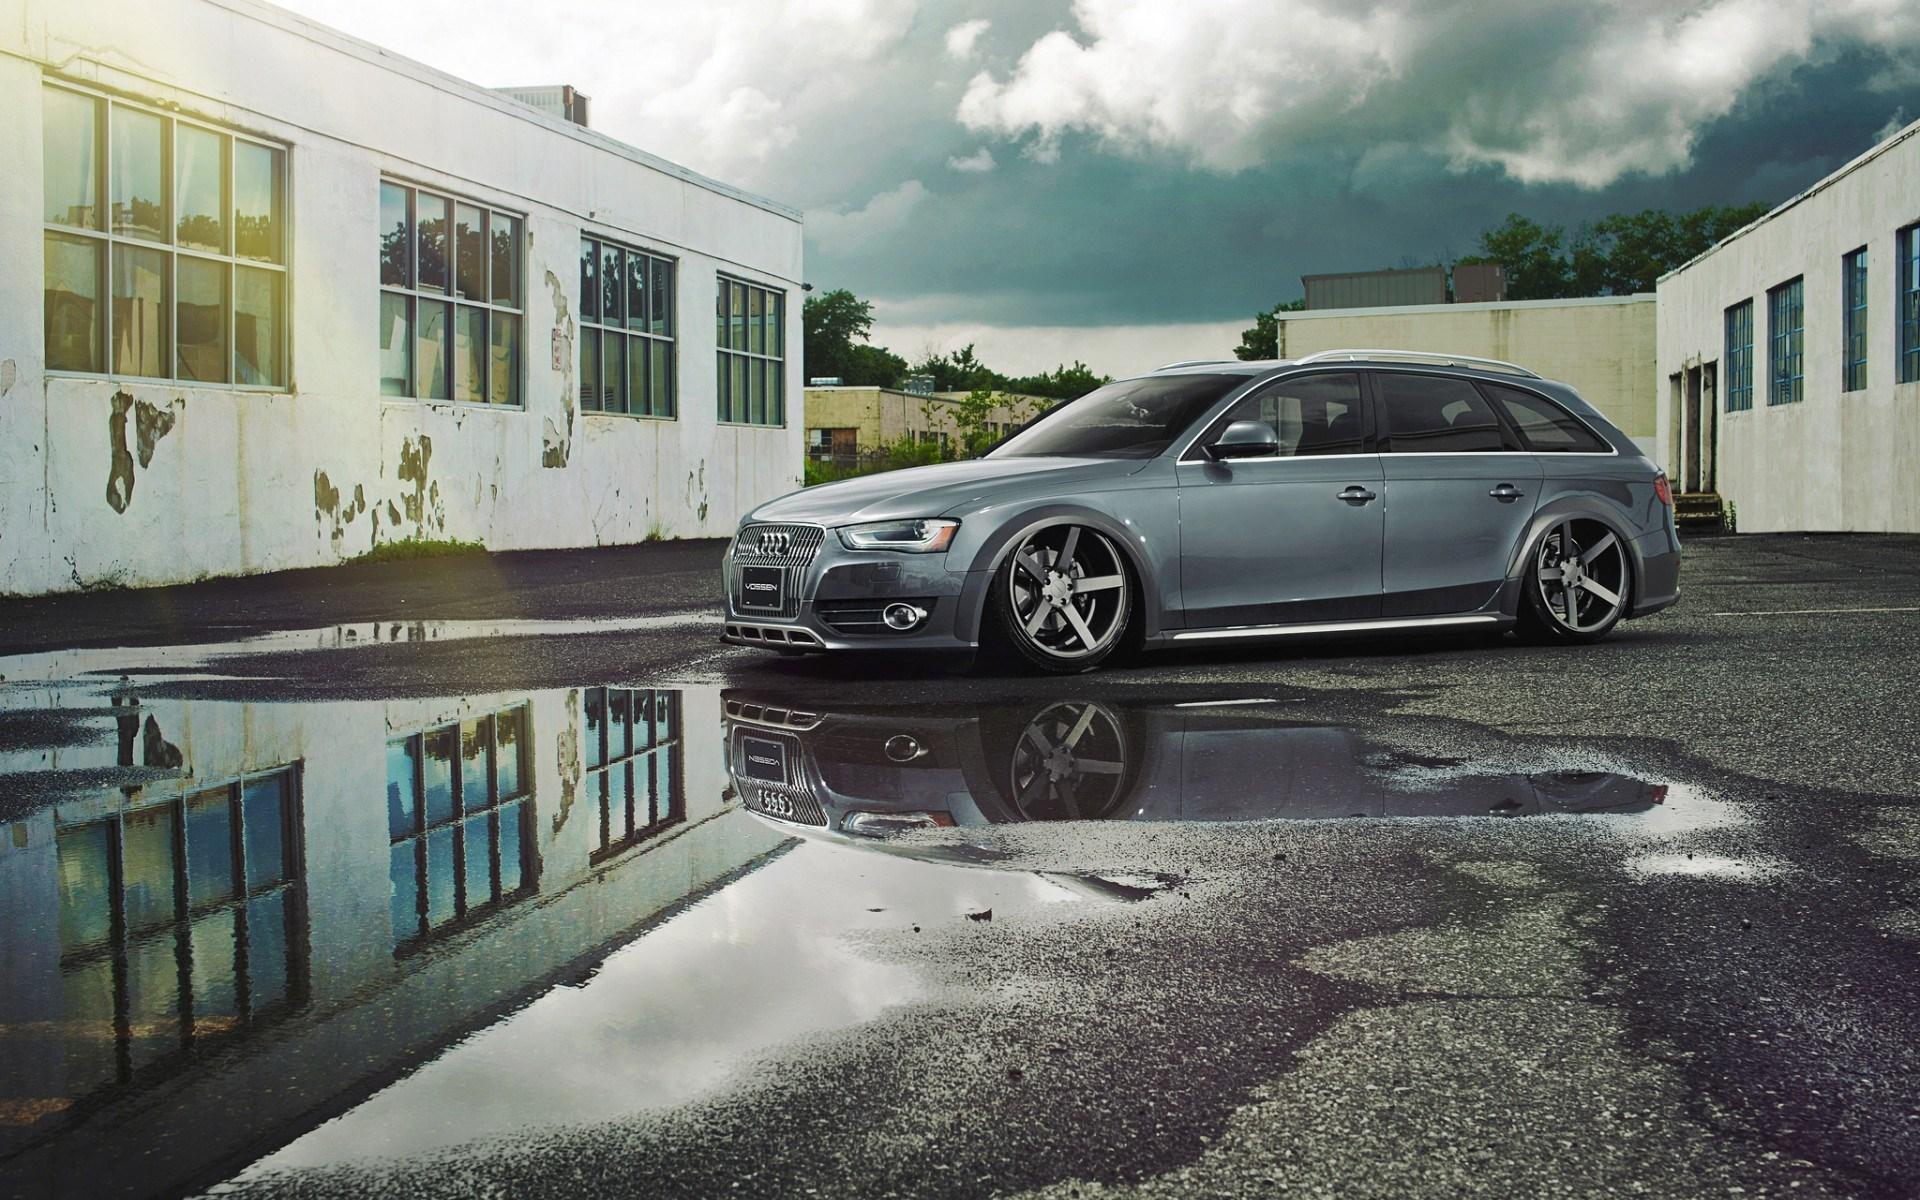 Audi A6 Allroad Car Tuning wallpaper | 1920x1200 | #15906